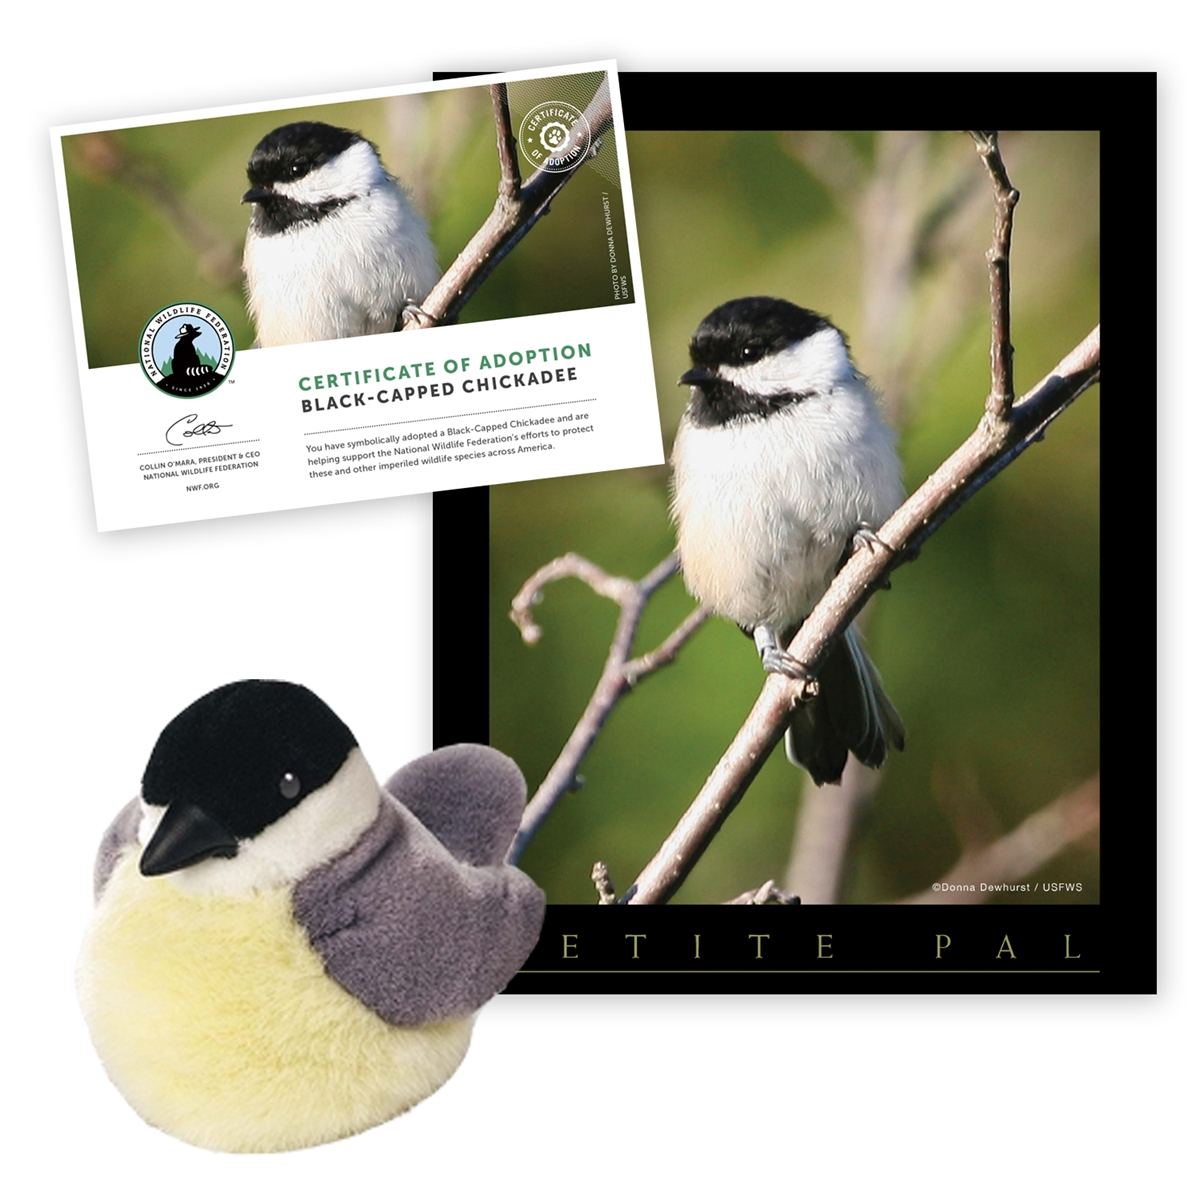 Adopt a Black-Capped Chickadee